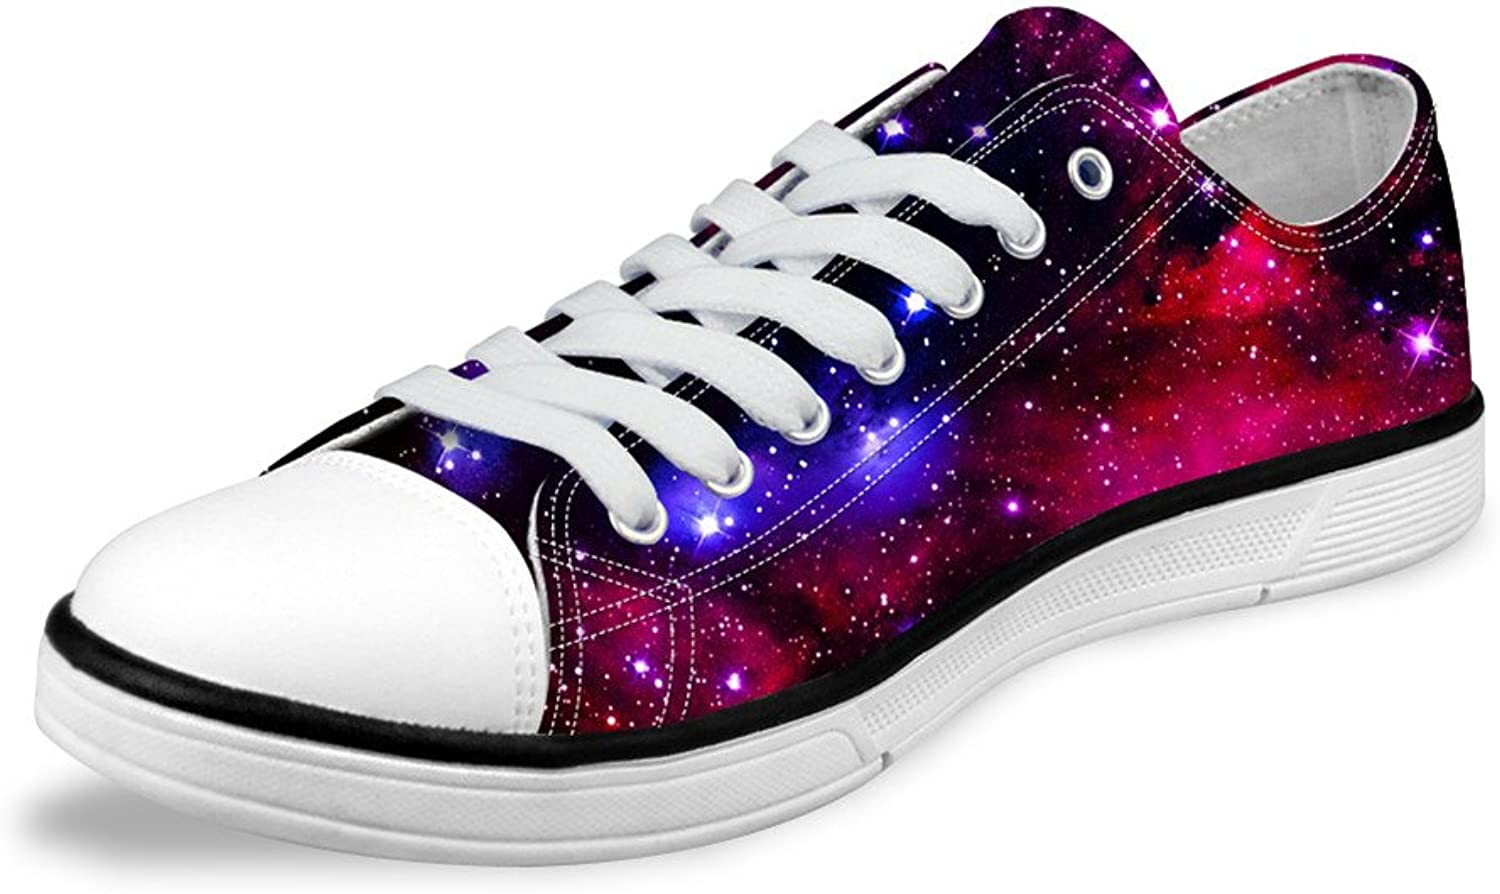 FOR U DESIGNS Red Galaxy Print Low top Comfy Lace-up Canvas Sneaker for Women Lady US 11